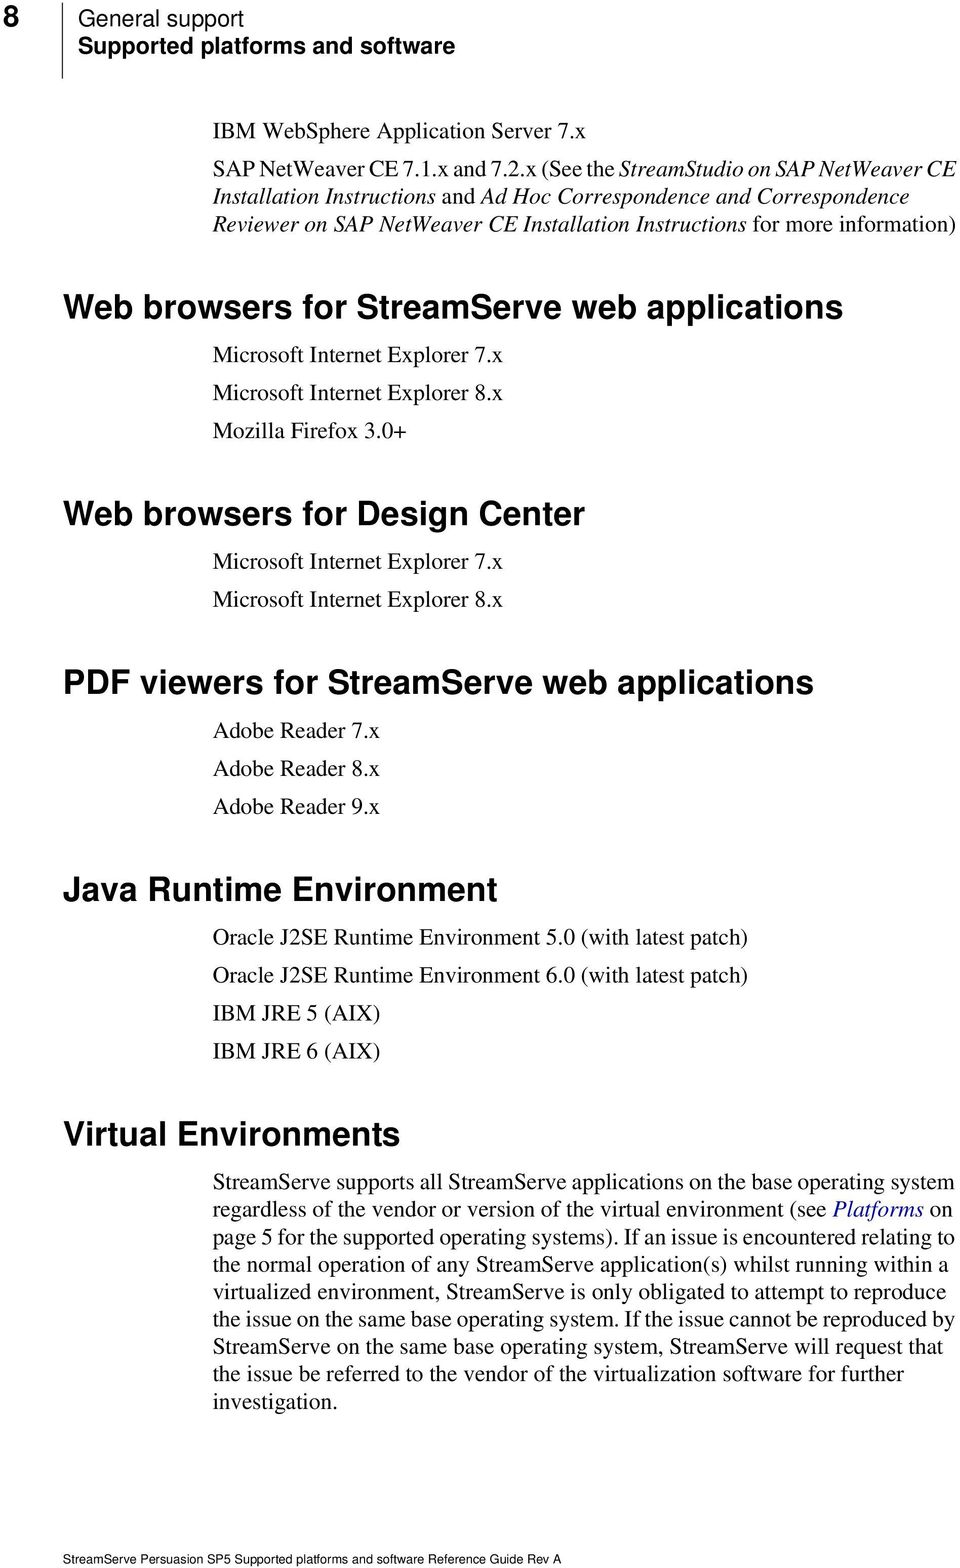 browsers for StreamServe web applications Microsoft Internet Explorer 7.x Microsoft Internet Explorer 8.x Mozilla Firefox 3.0+ Web browsers for Design Center Microsoft Internet Explorer 7.